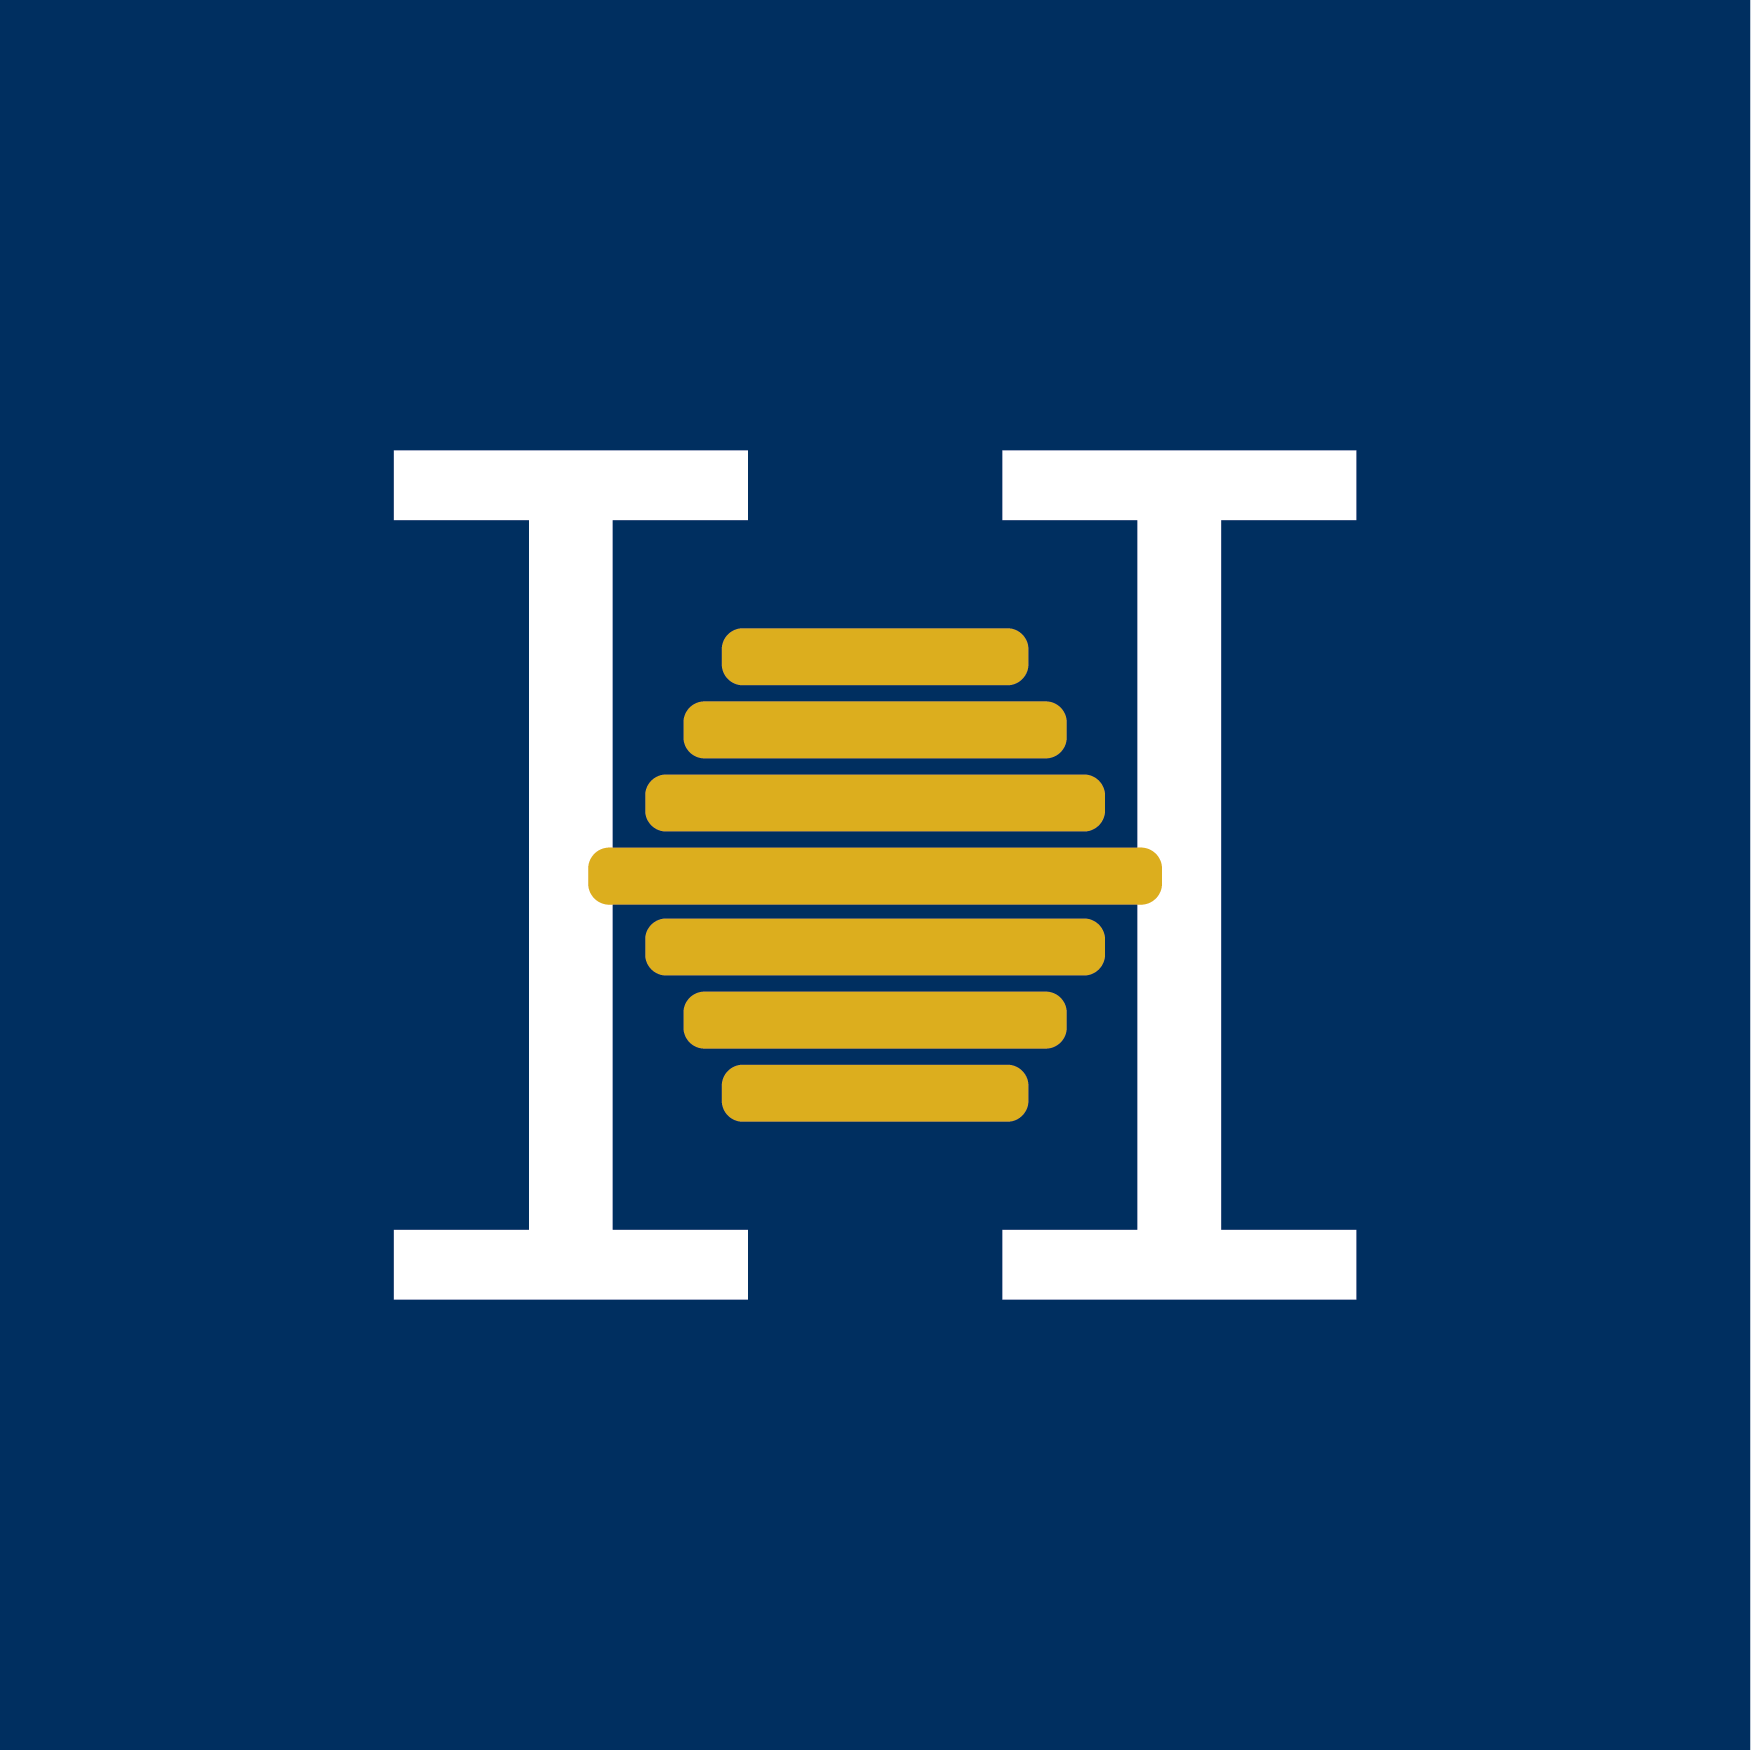 TheHive_Icon_Navy.png